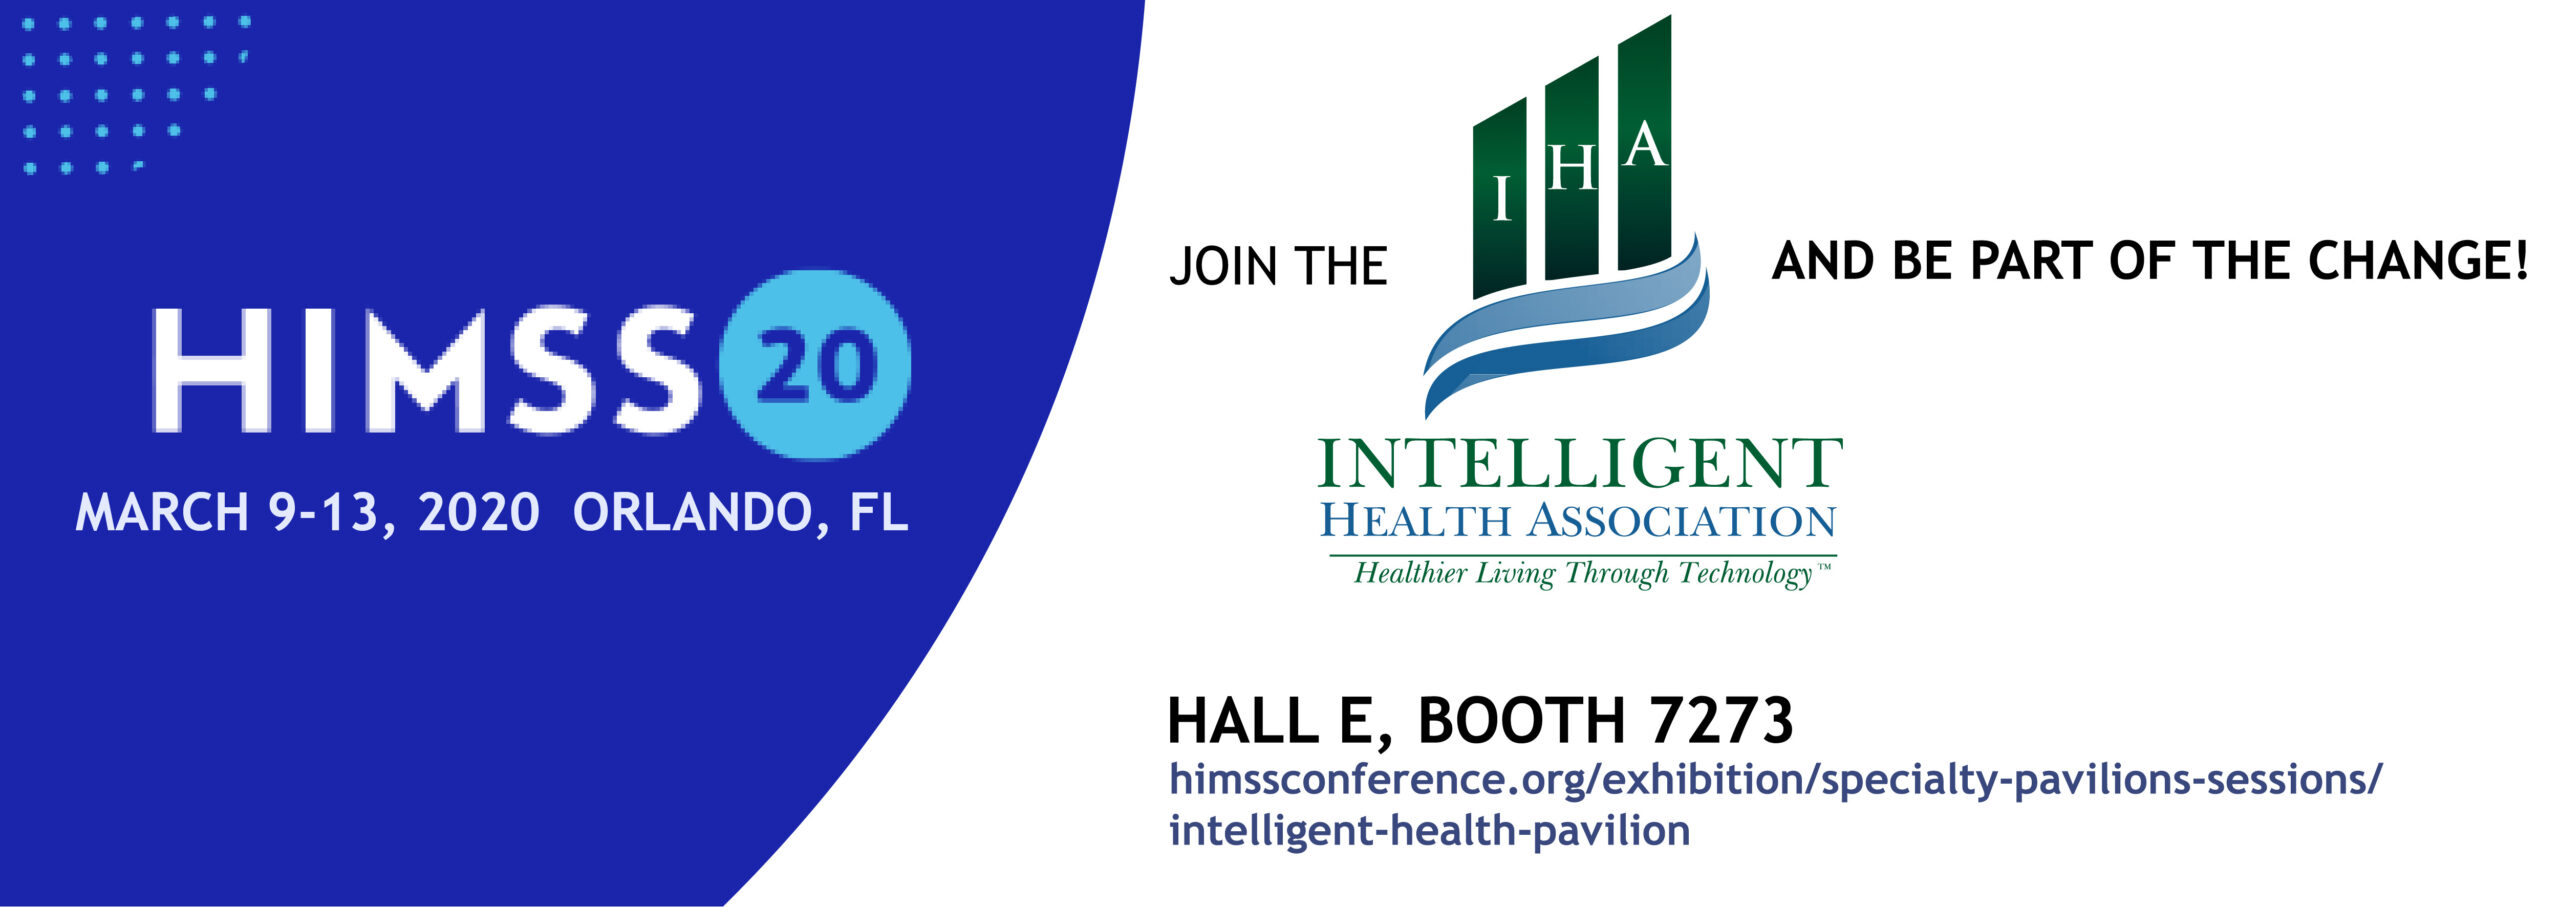 10th year for the IH Pavilion is at HIMSS20